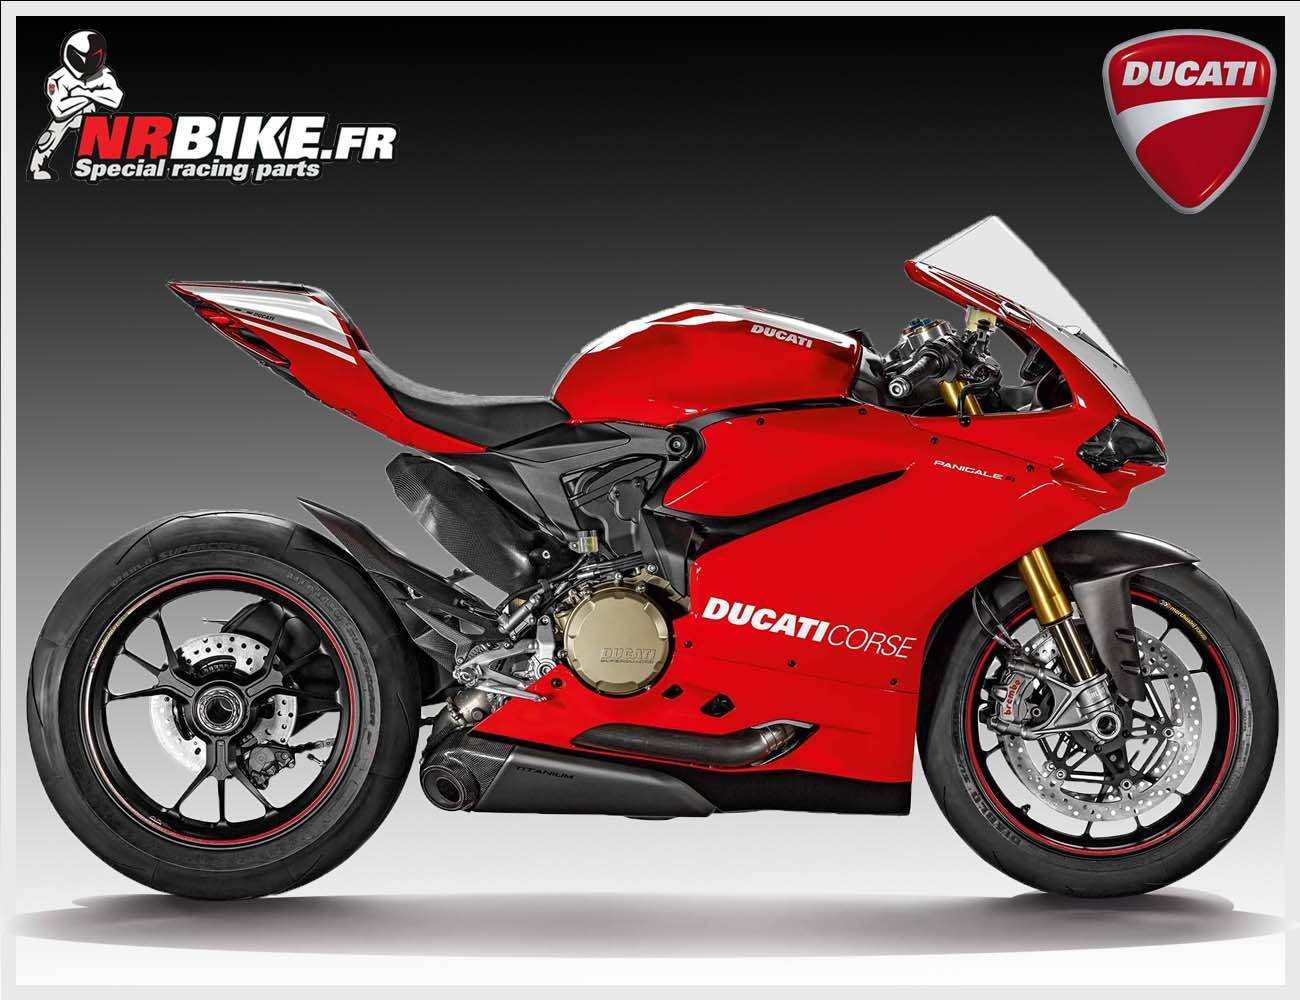 PANIGALE 1199 R